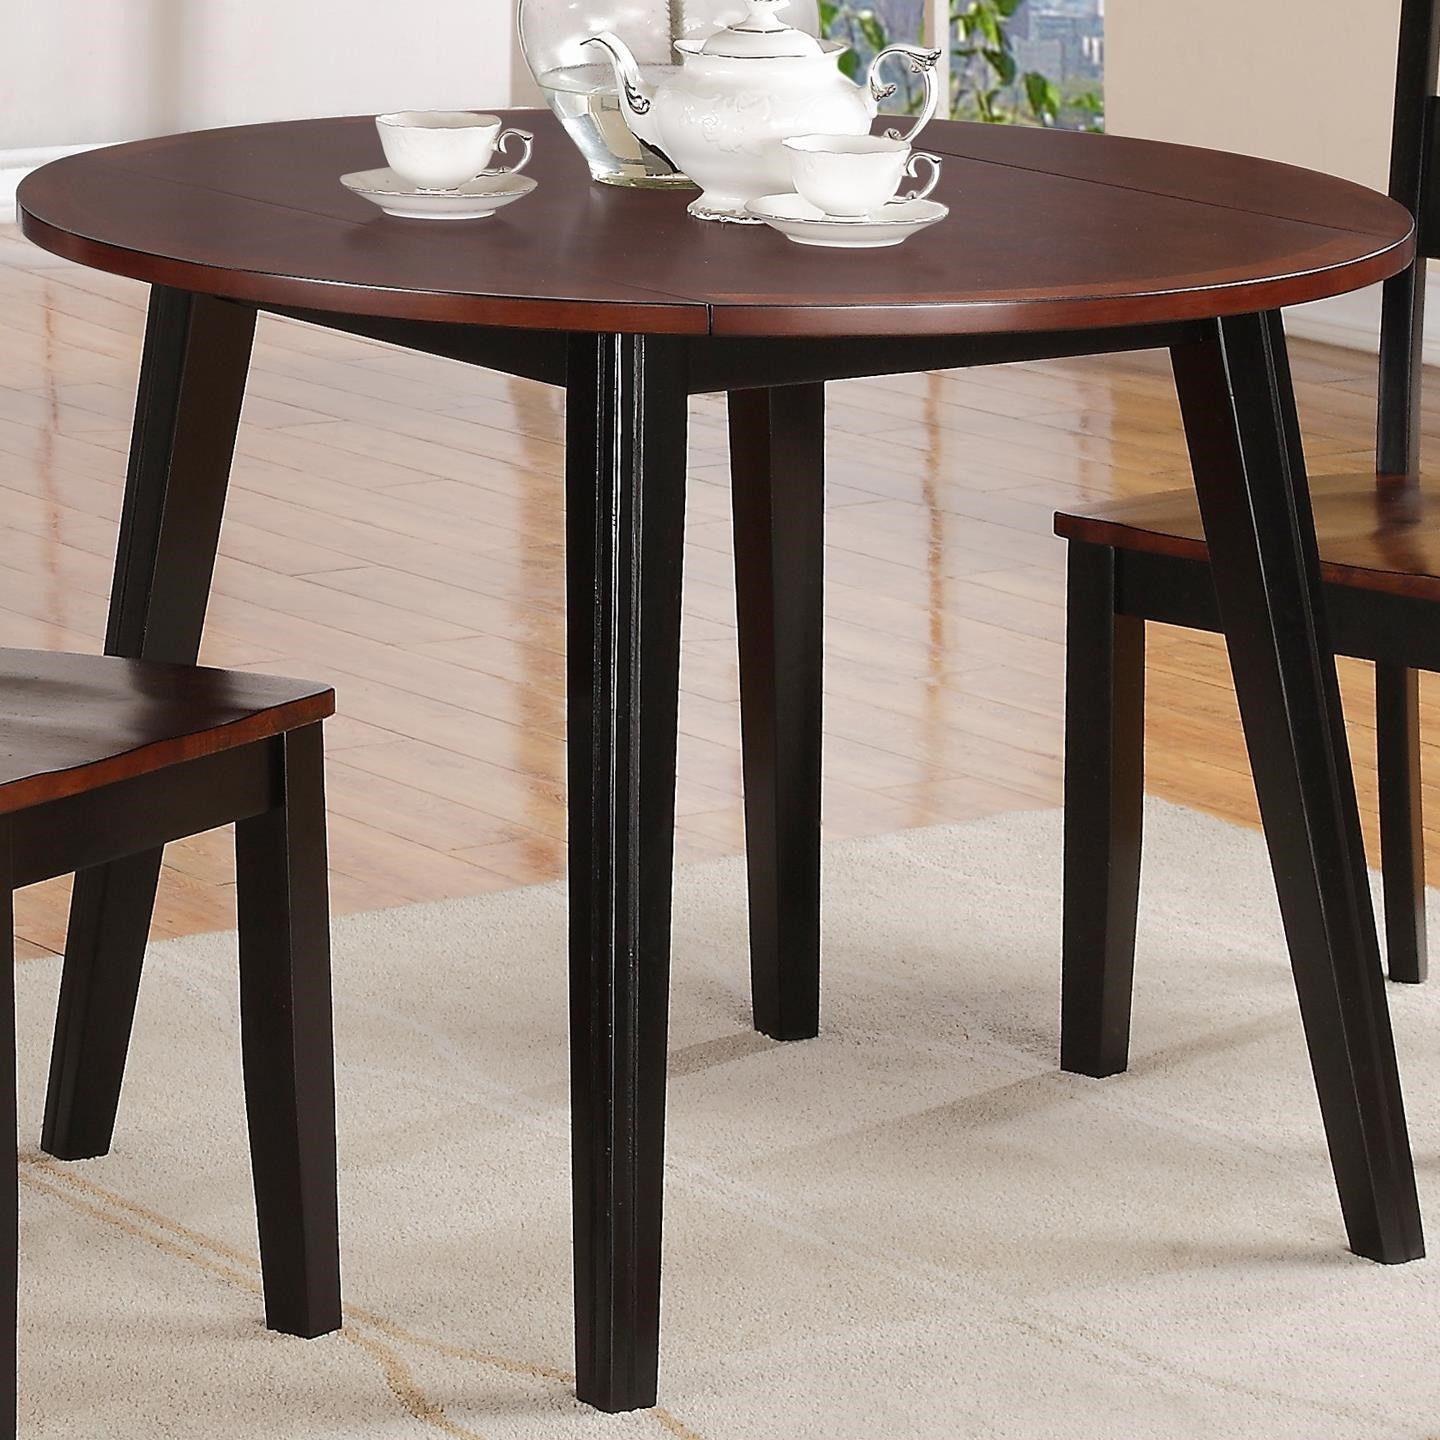 Holland House 8202 Round Drop Leaf Table